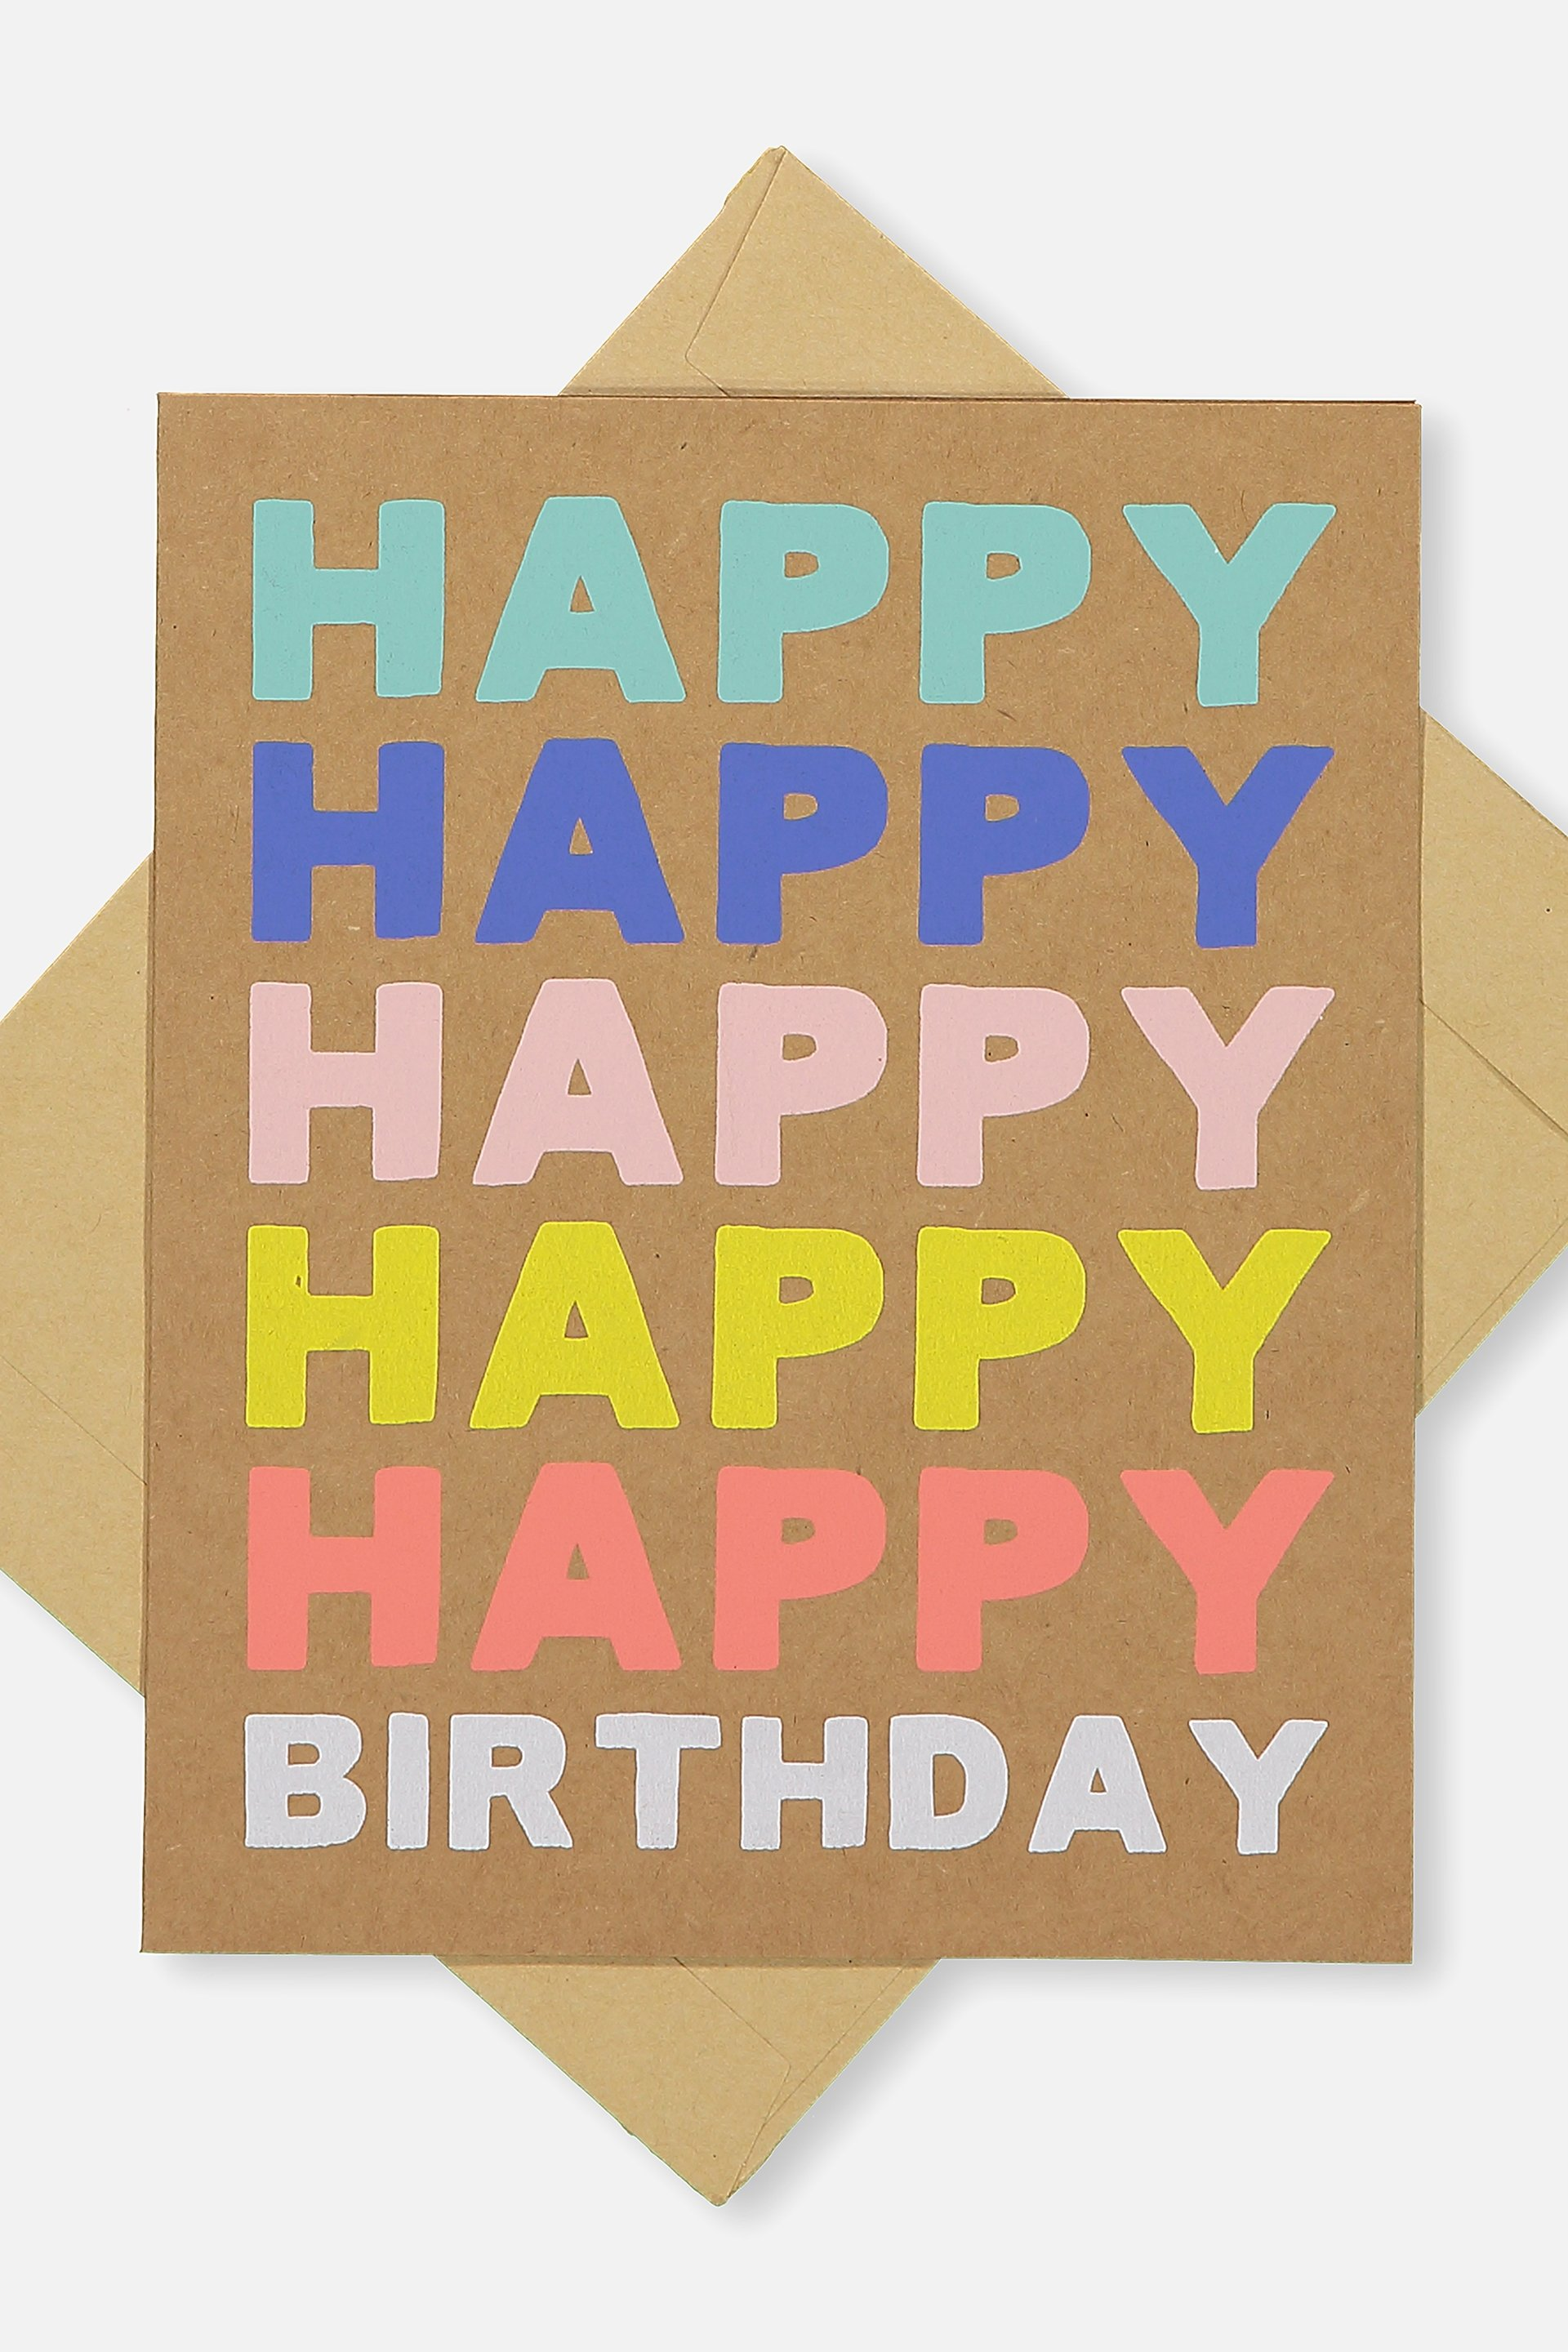 Typo - Nice Birthday Card - Happy happy birthday